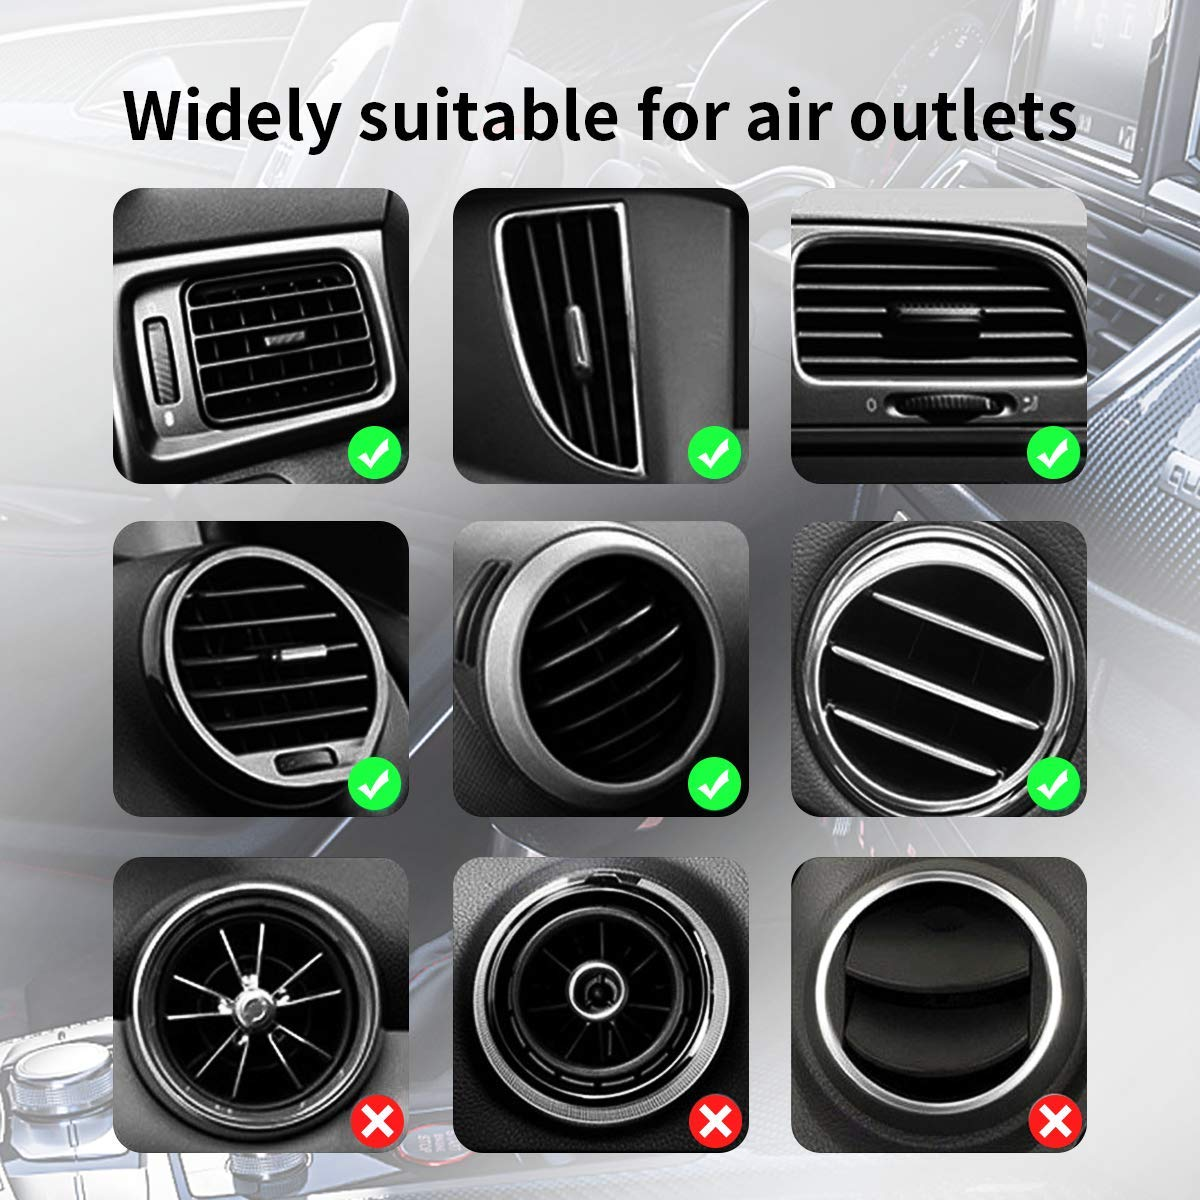 10W Fast Wireless Charger Car Mount Air Vent Gravity Design Phone Holder Compatible iPhone X//XS//XR Galaxy S9//S9+ All Qi Devices Uniounp Black 1 Wireless Car Charger